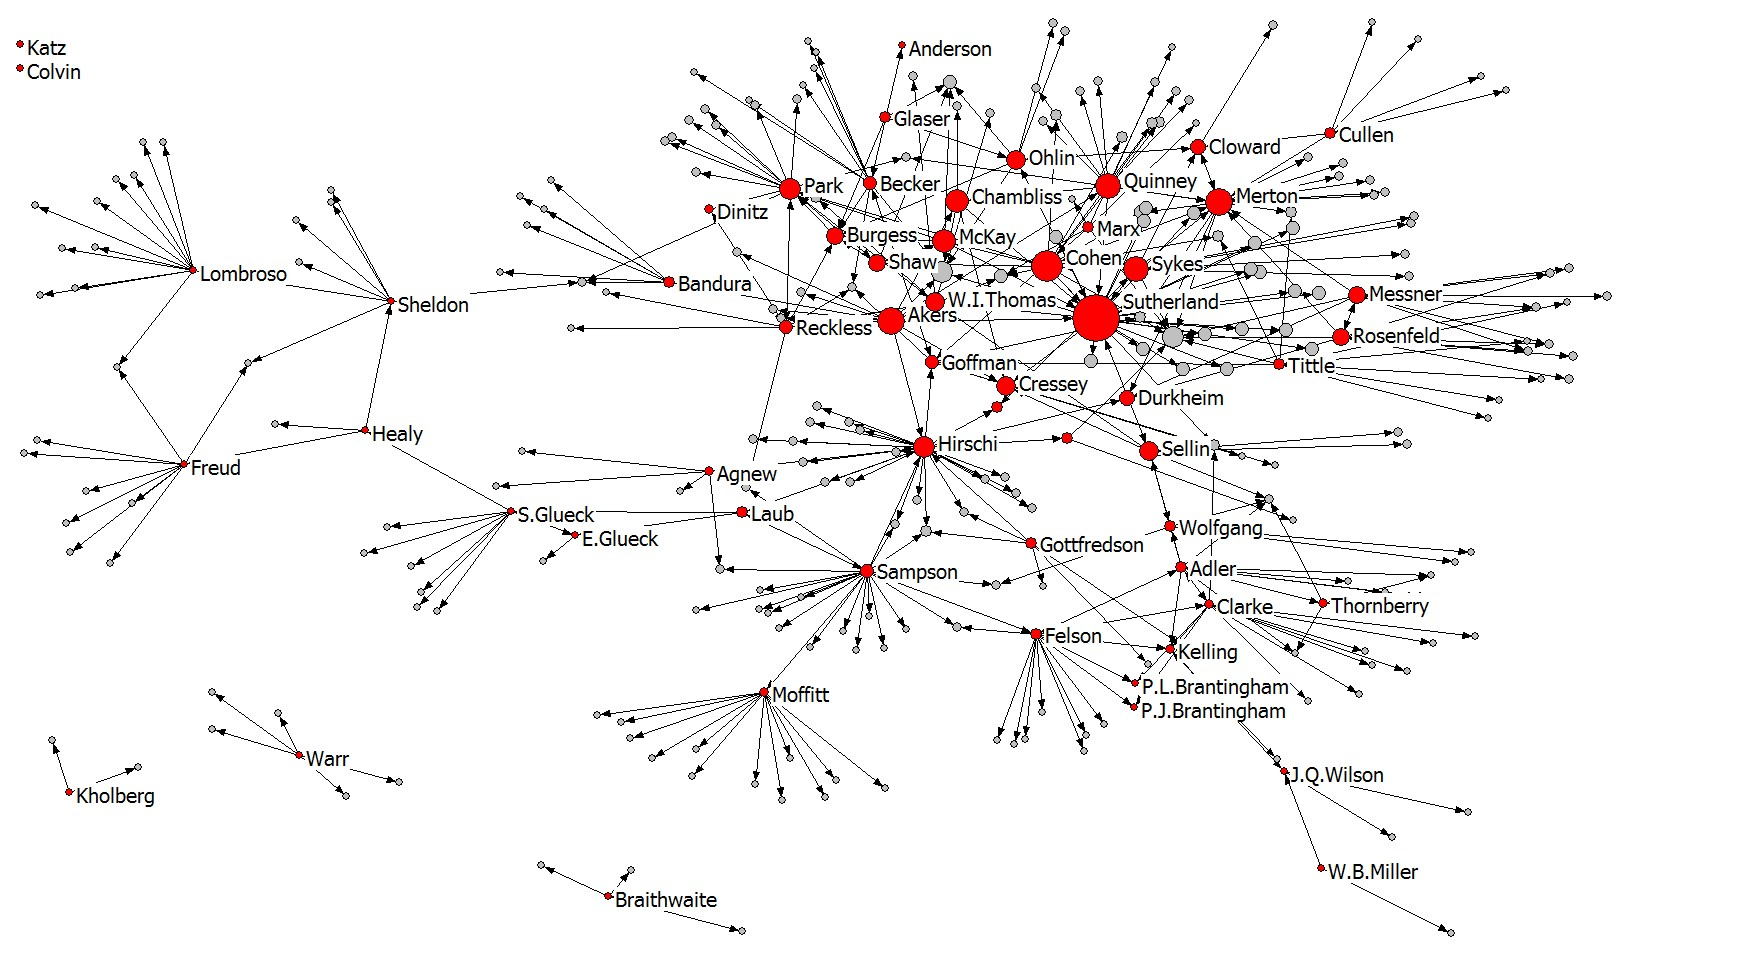 schemes and doppelgangers, network theory and actor